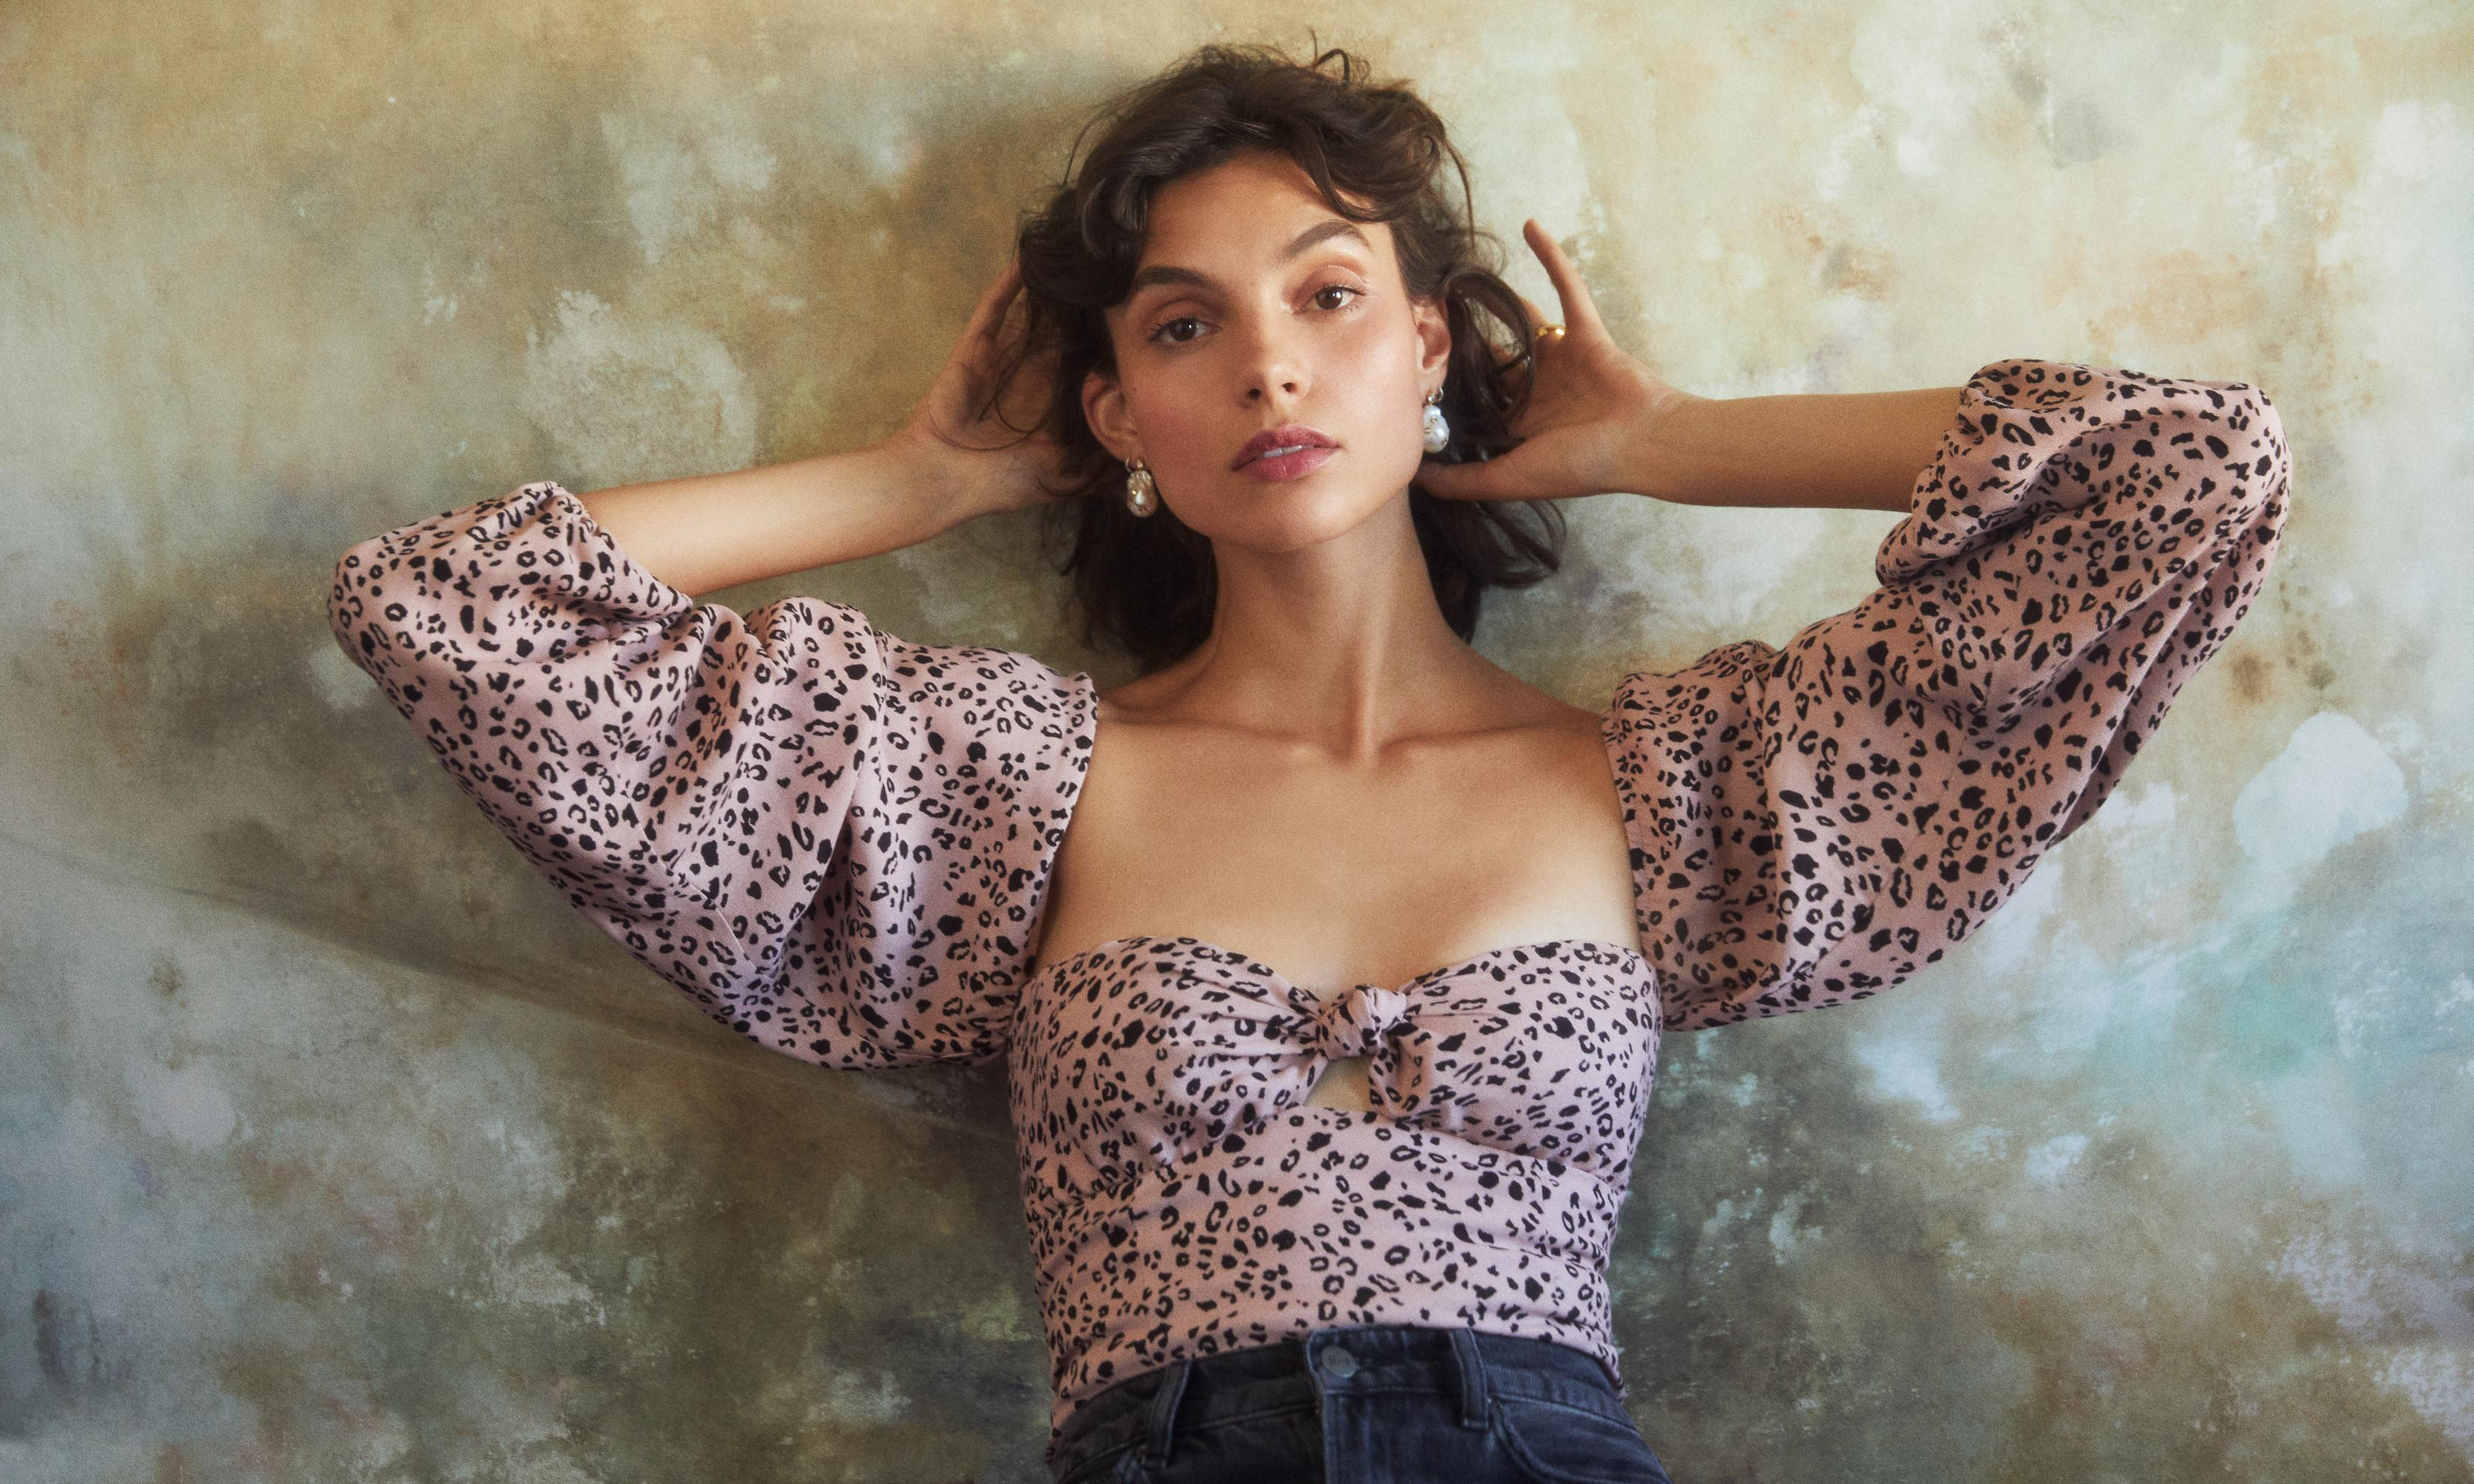 Reformation's sustainable style comes to the UK as cult label opens first store